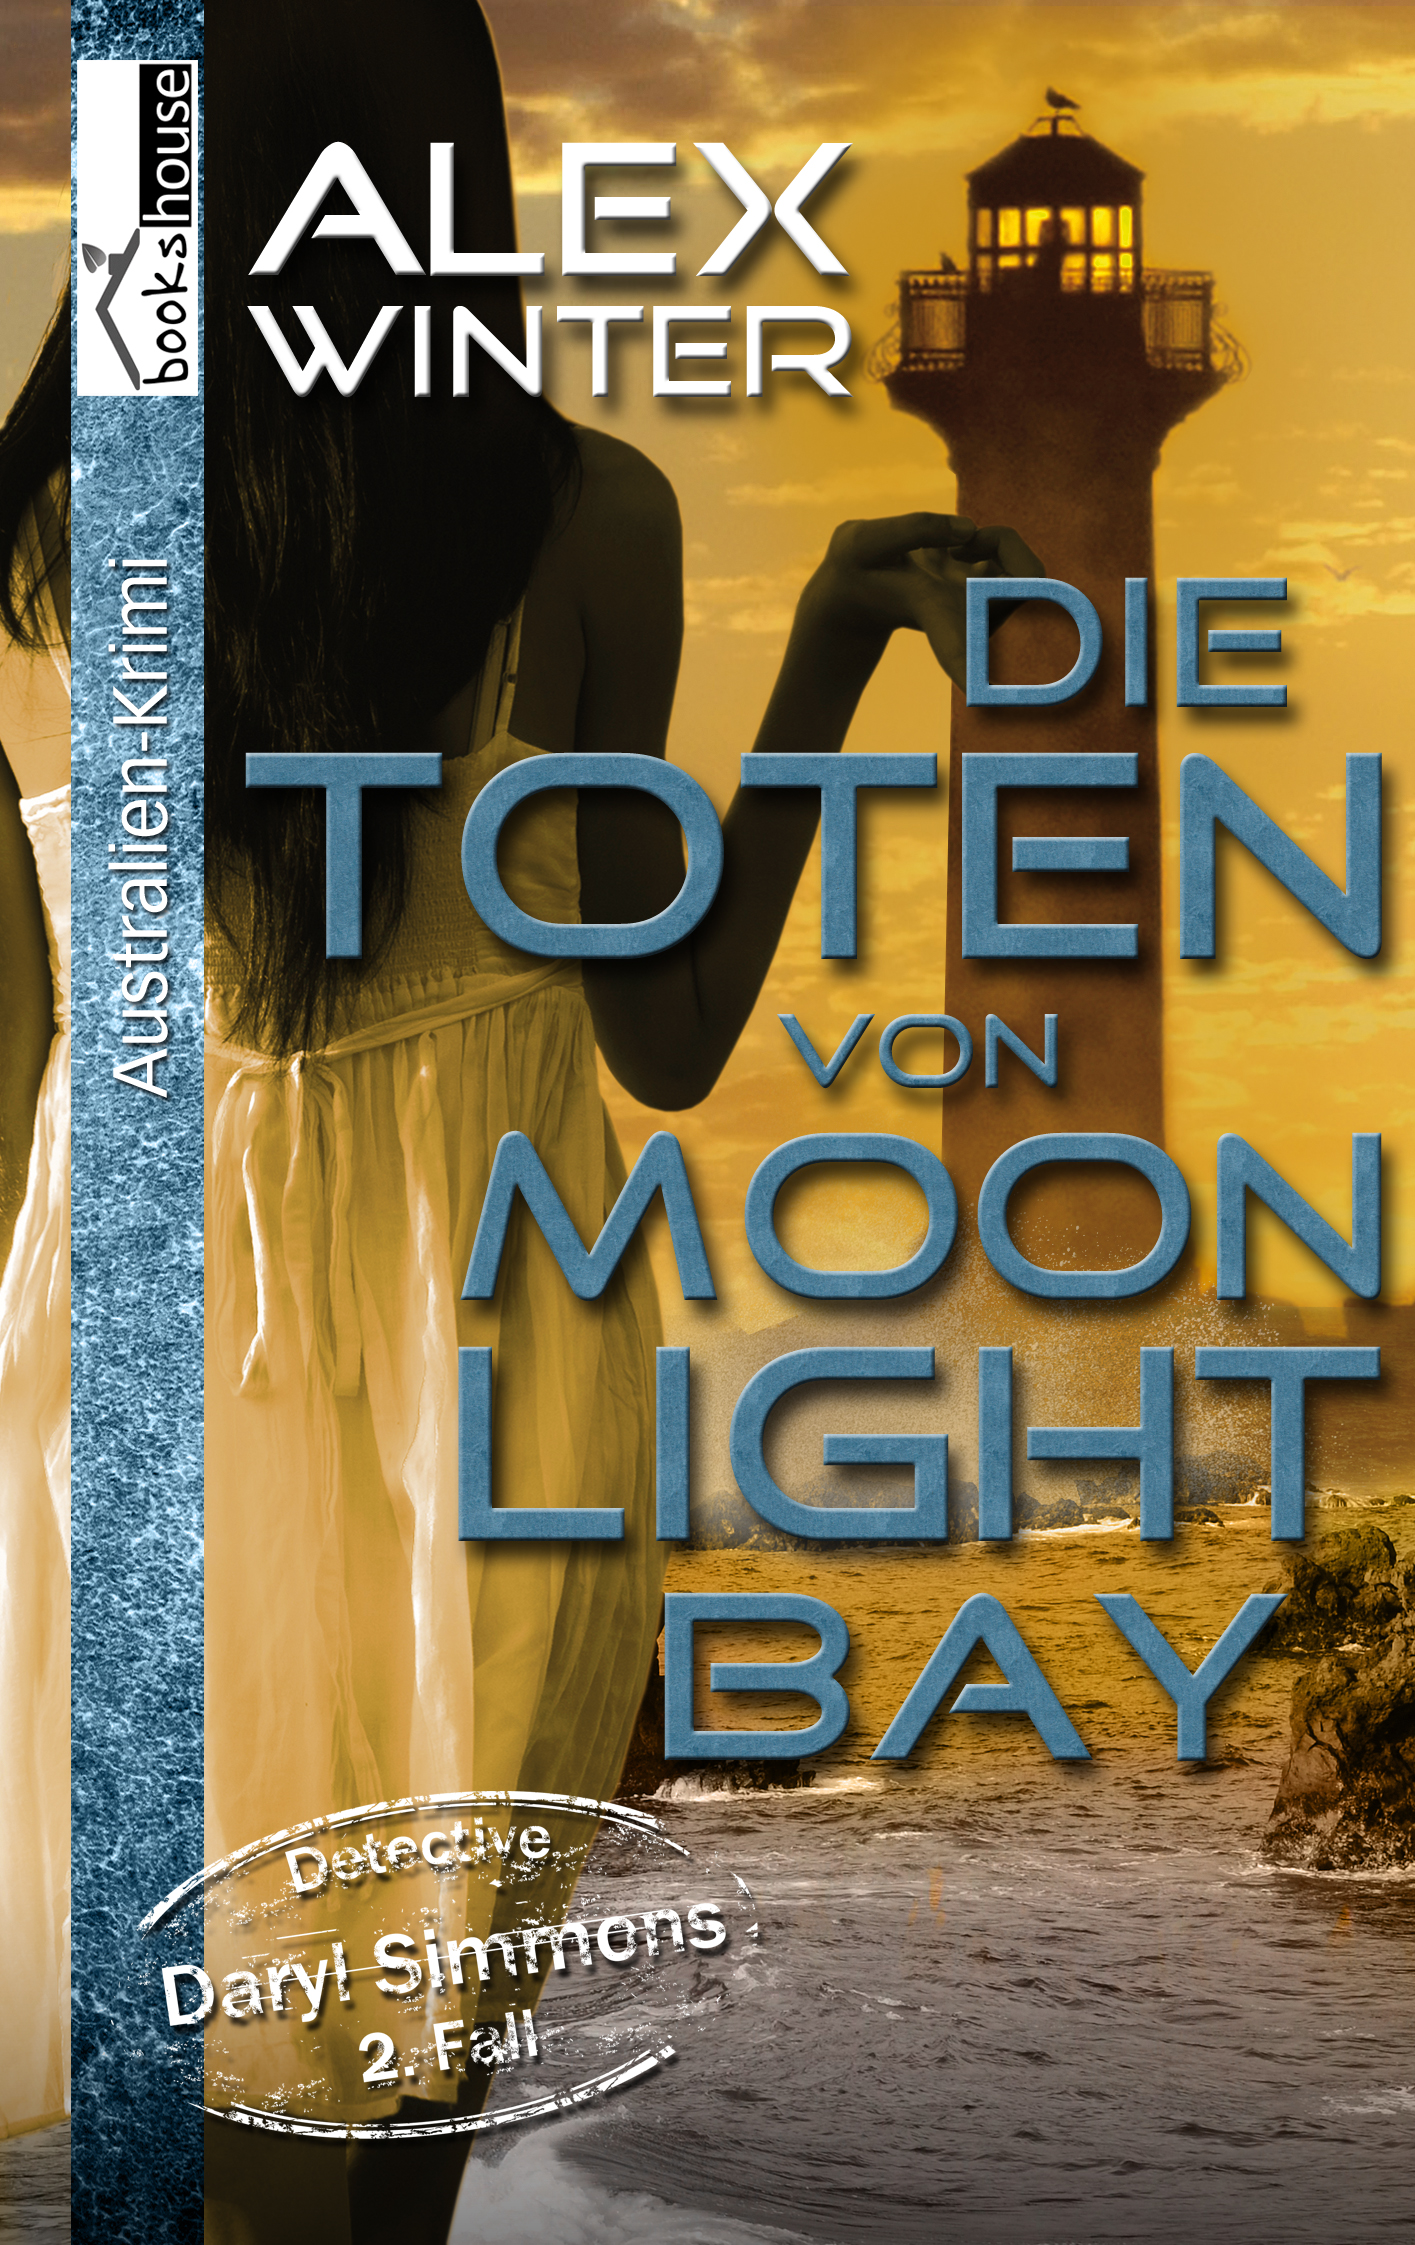 Die Toten von Moonlight Bay - Detectice Daryl Simmons 2. Fall